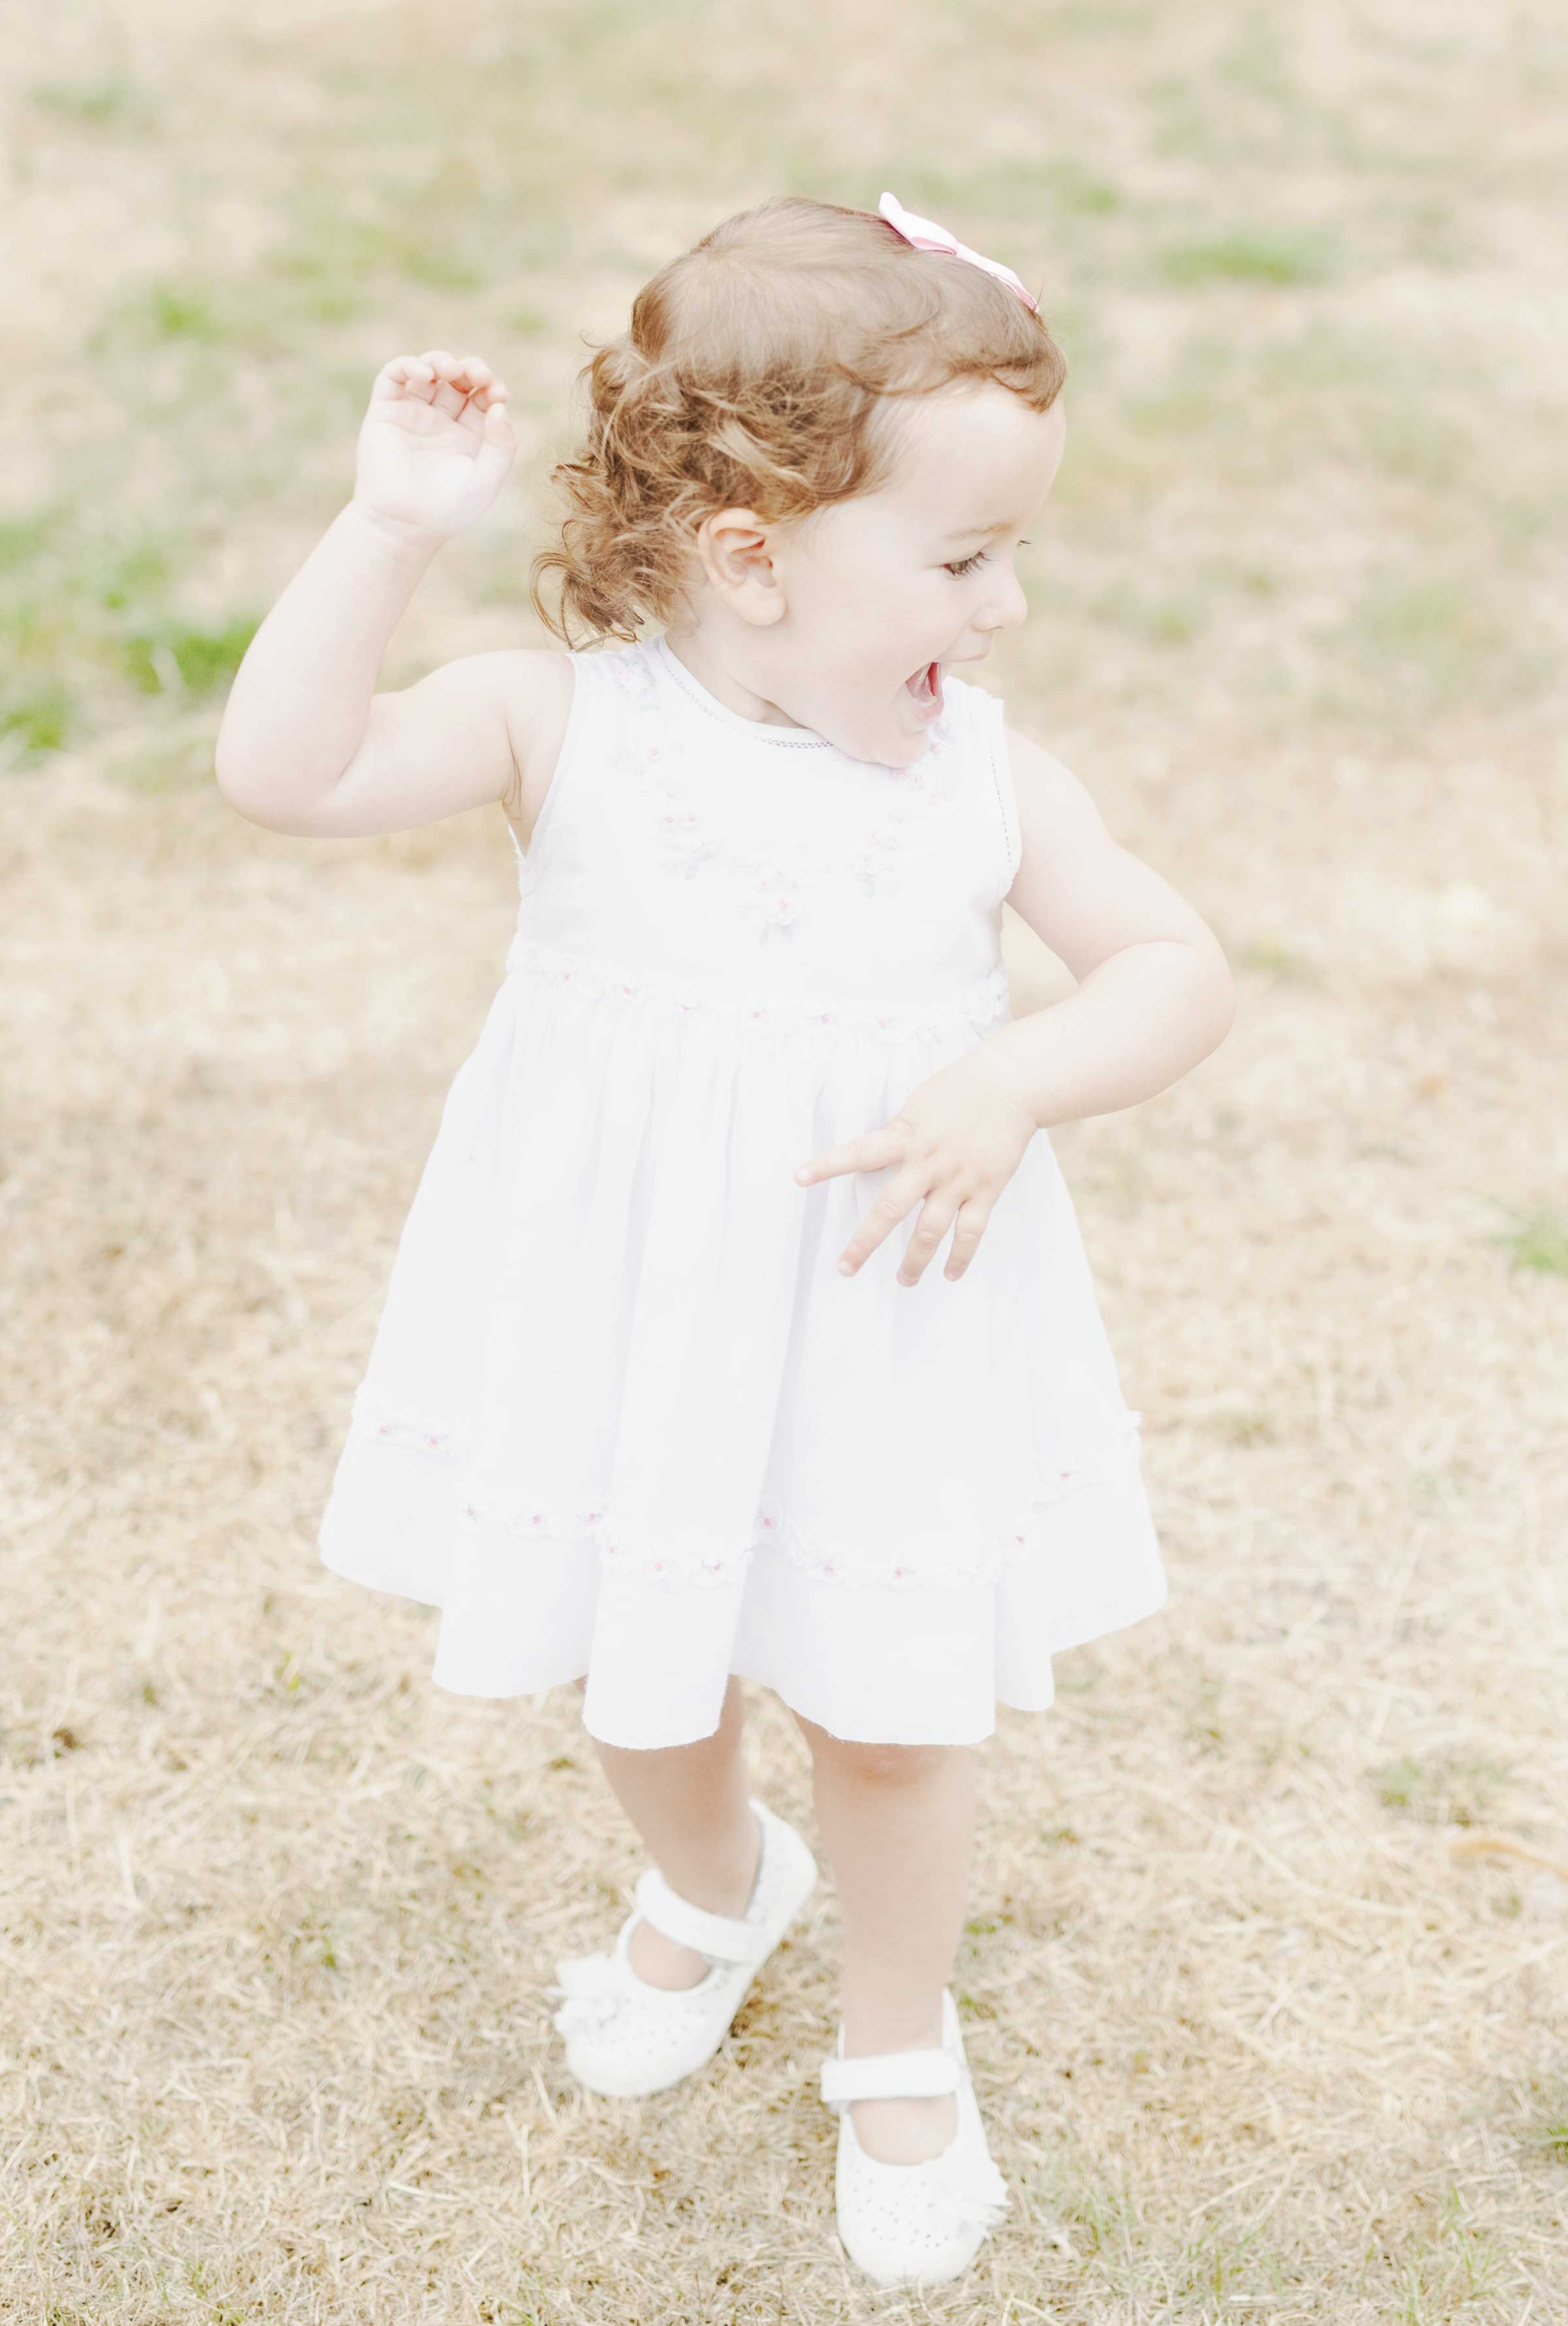 Baby girl posing in white dress in Canizaro Park, Wimbledon, London